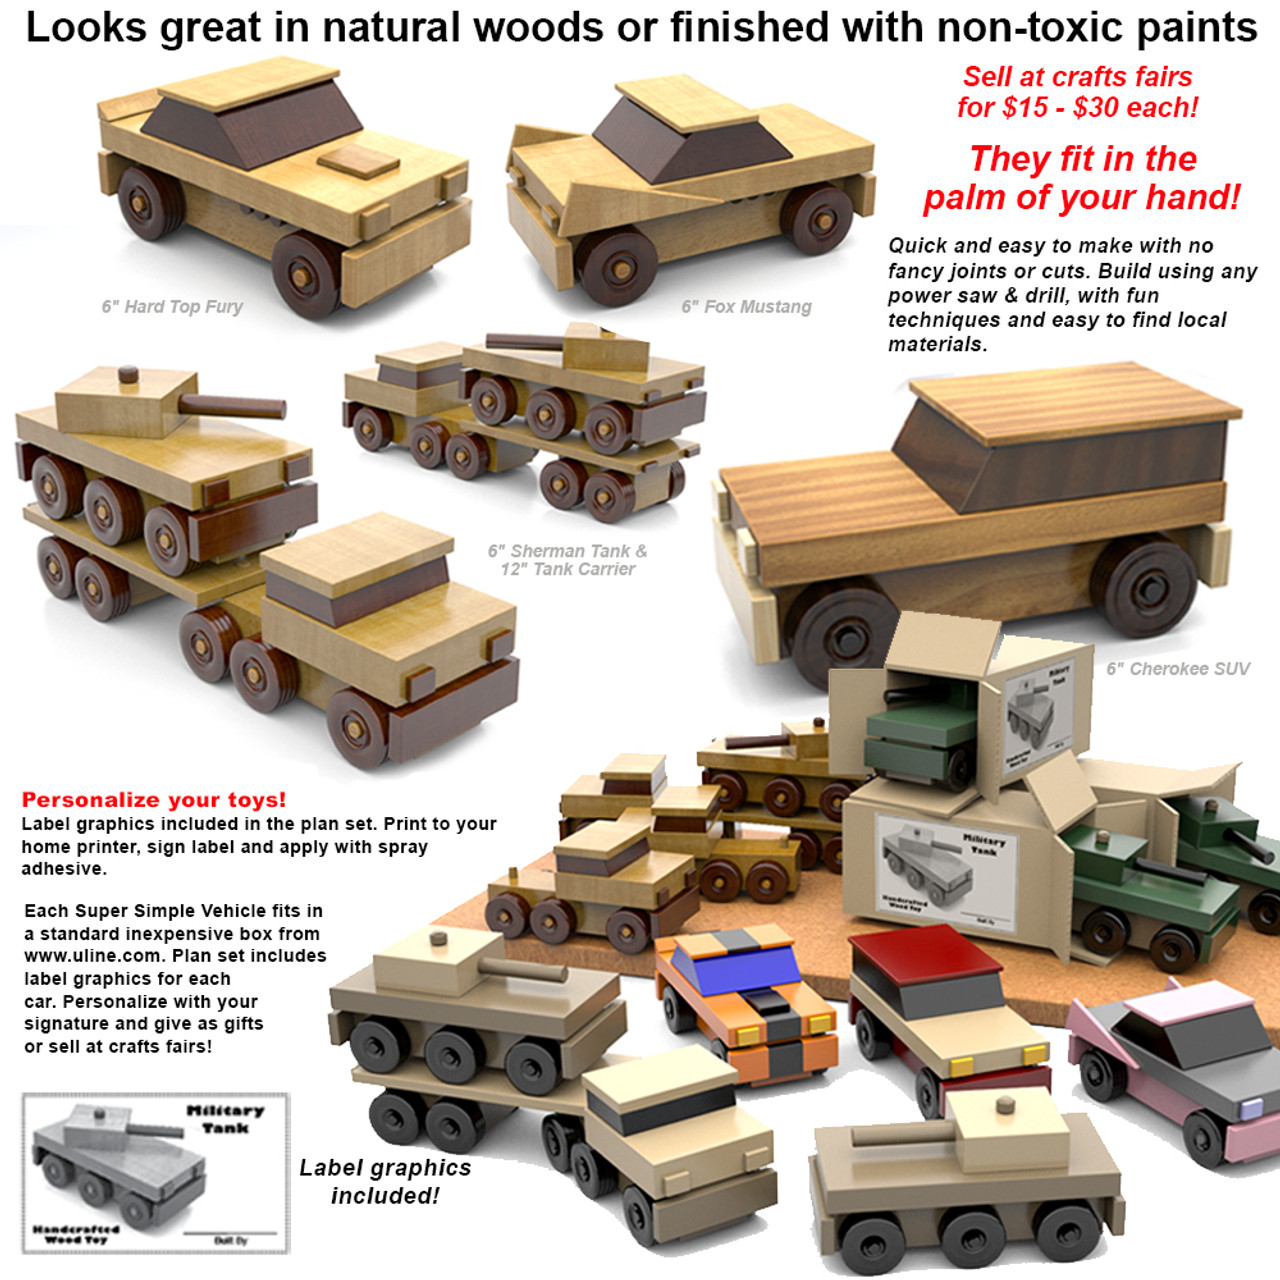 super simple six inch specials wood toy plans (pdf download)